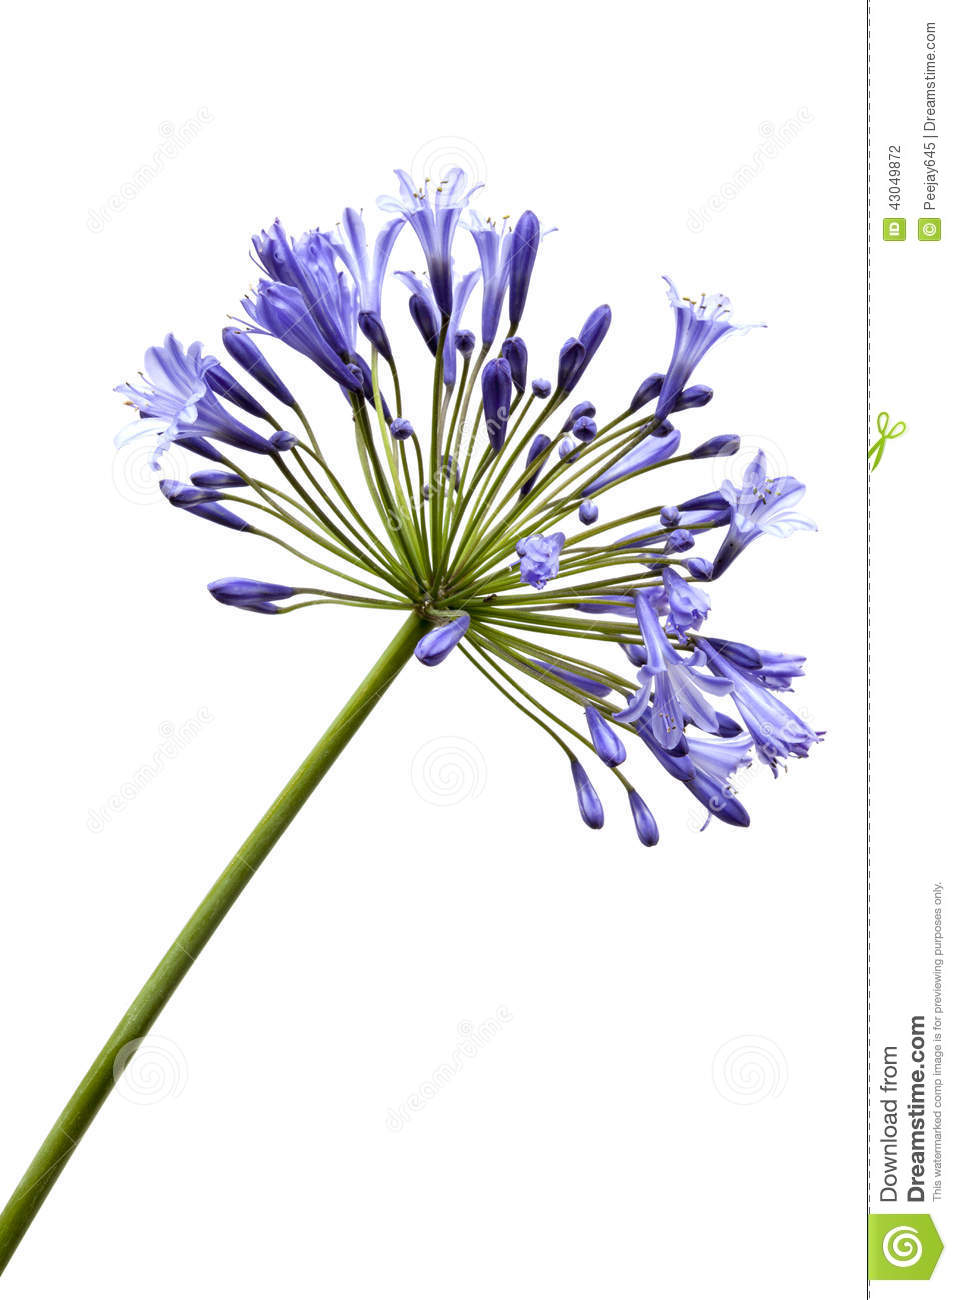 Agapanthus clipart #17, Download drawings